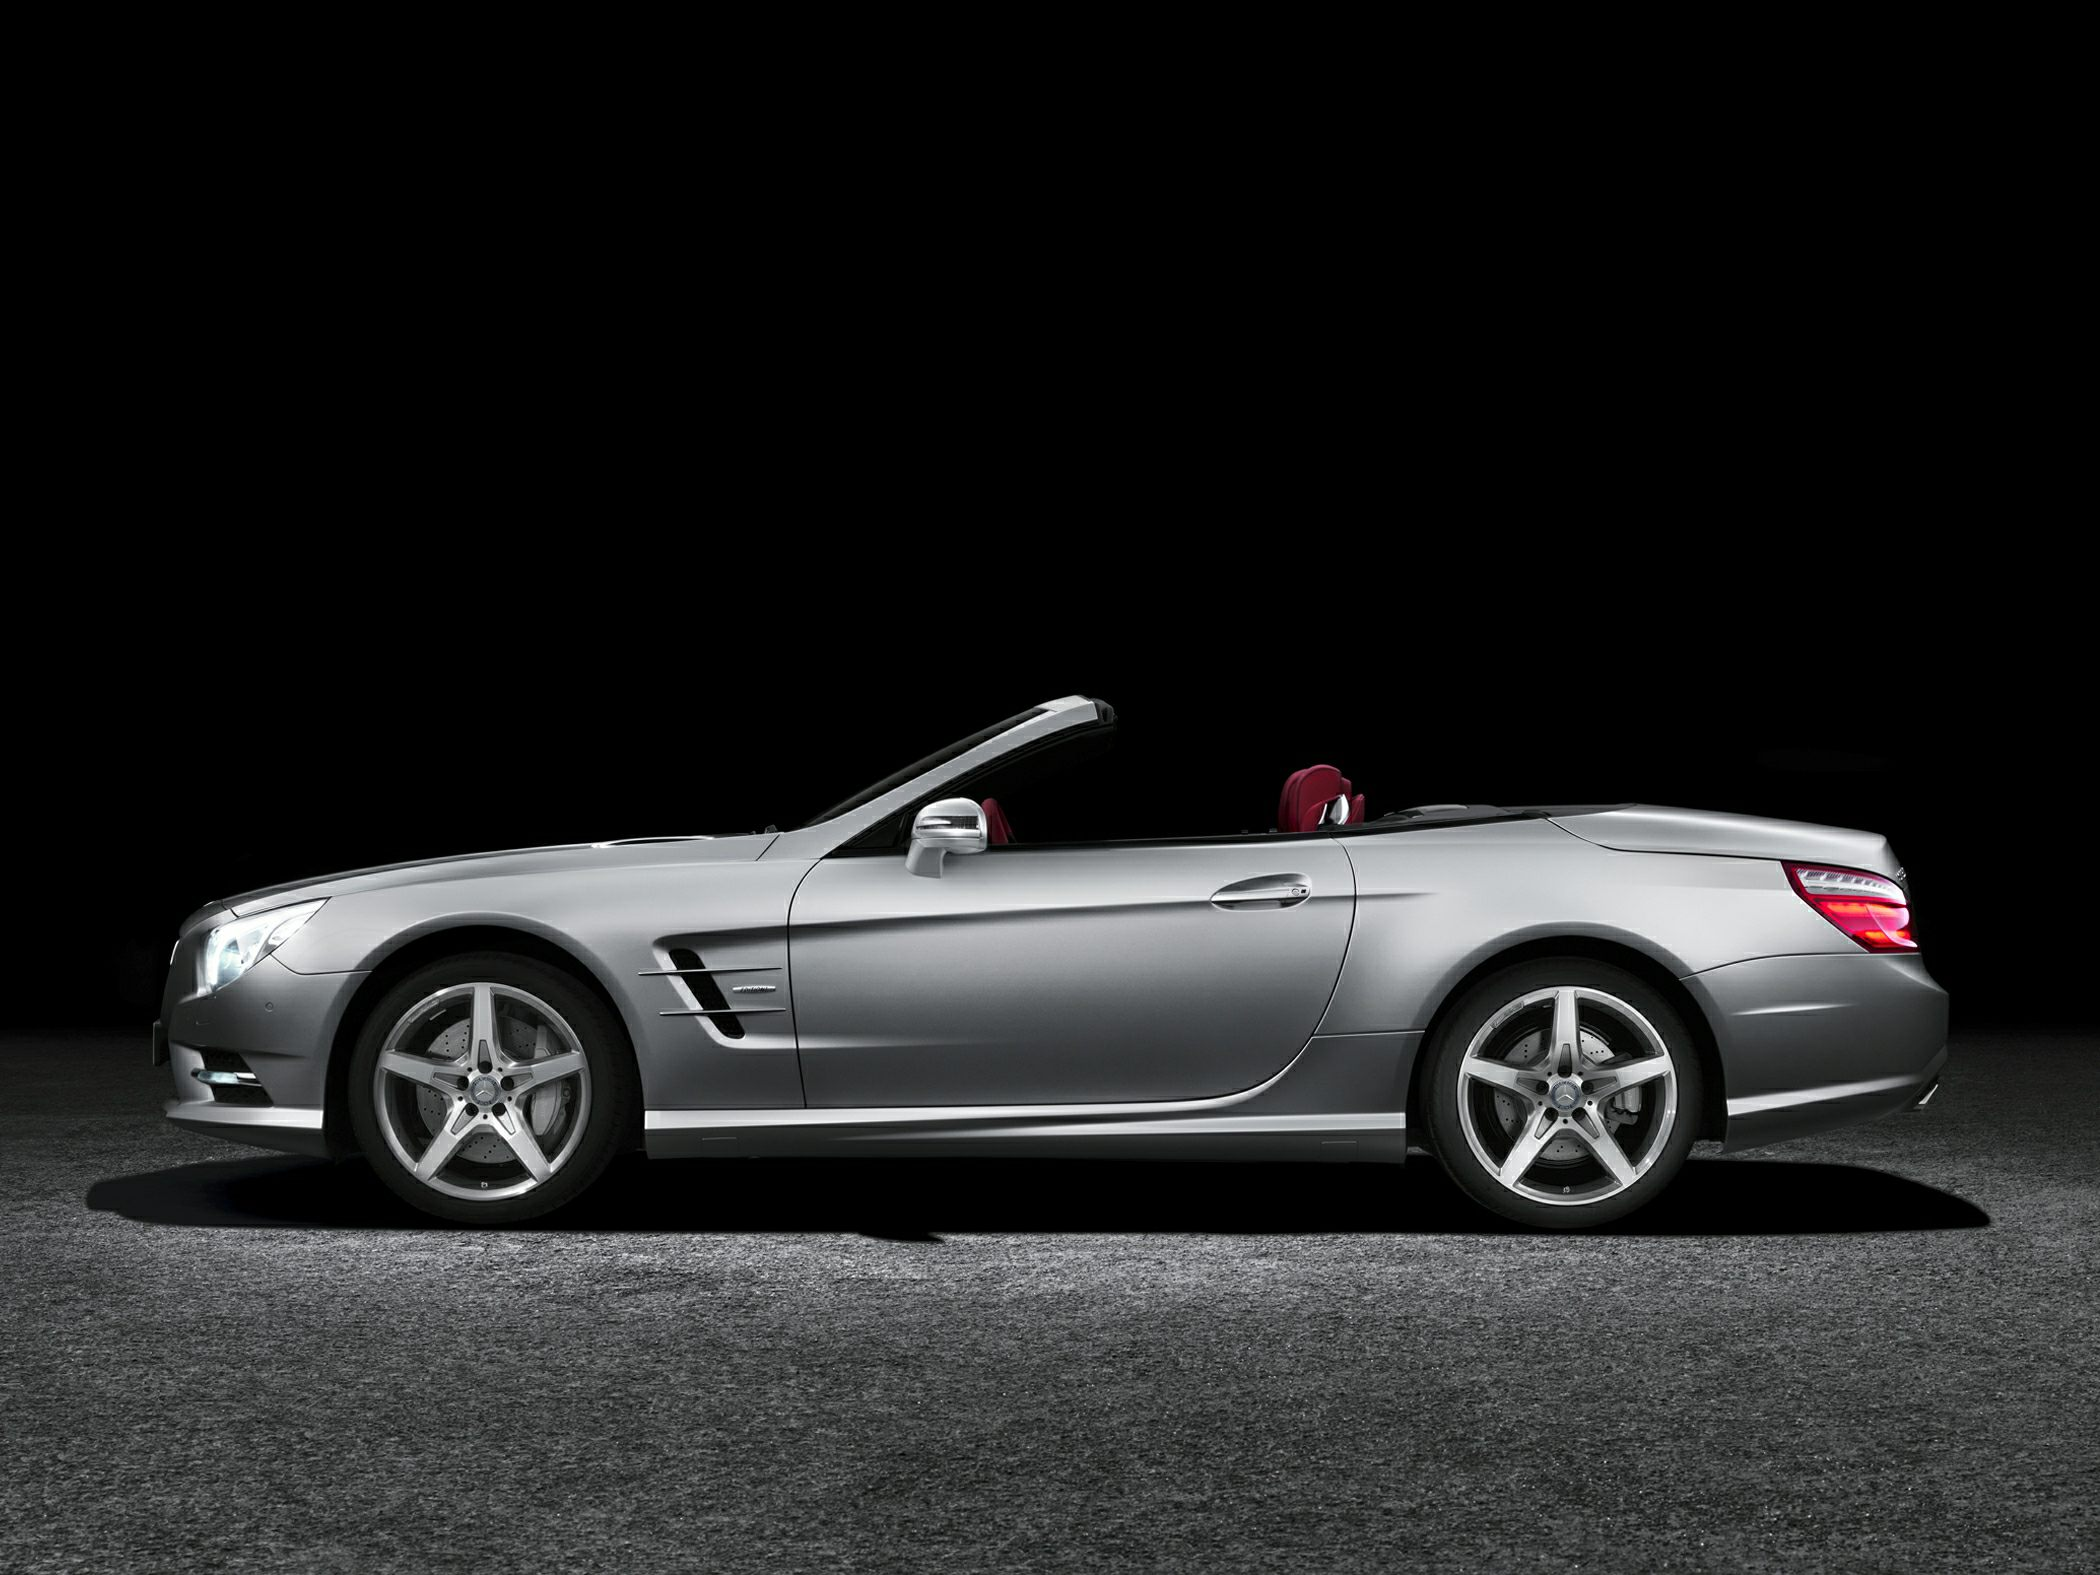 Mercedez-Benz SL550 Exterior Simple